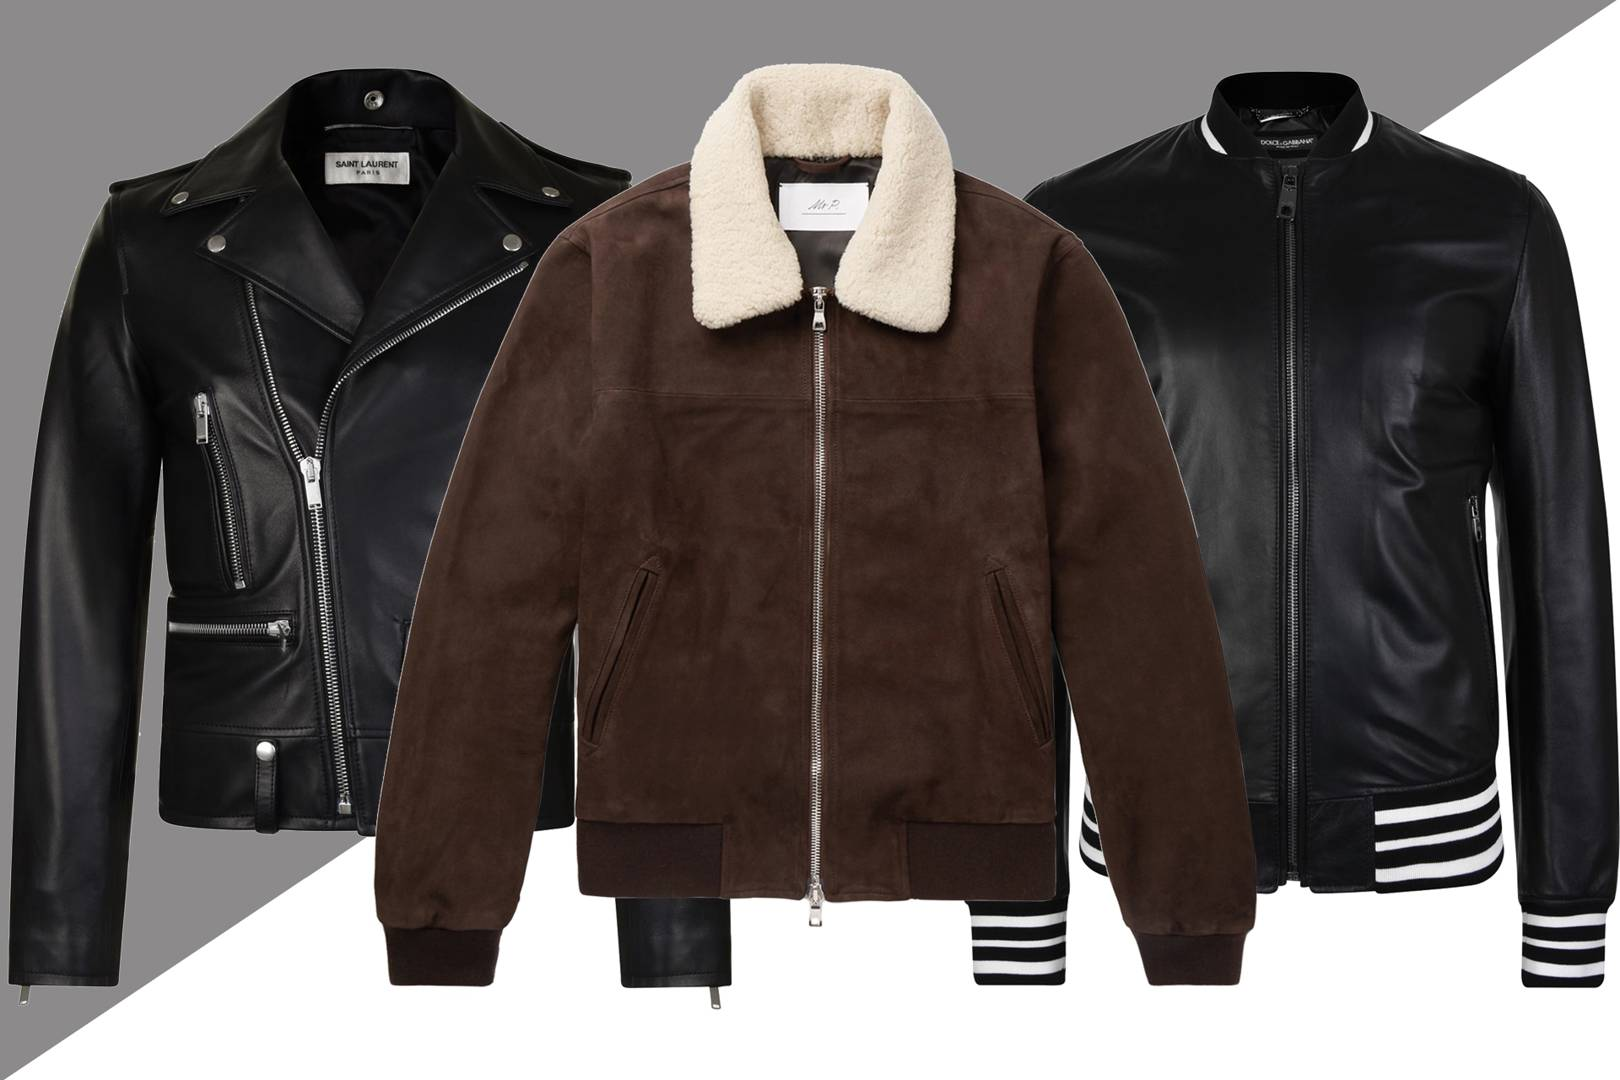 b0f7bdee538bd Men s leather jackets  how to look good in leather